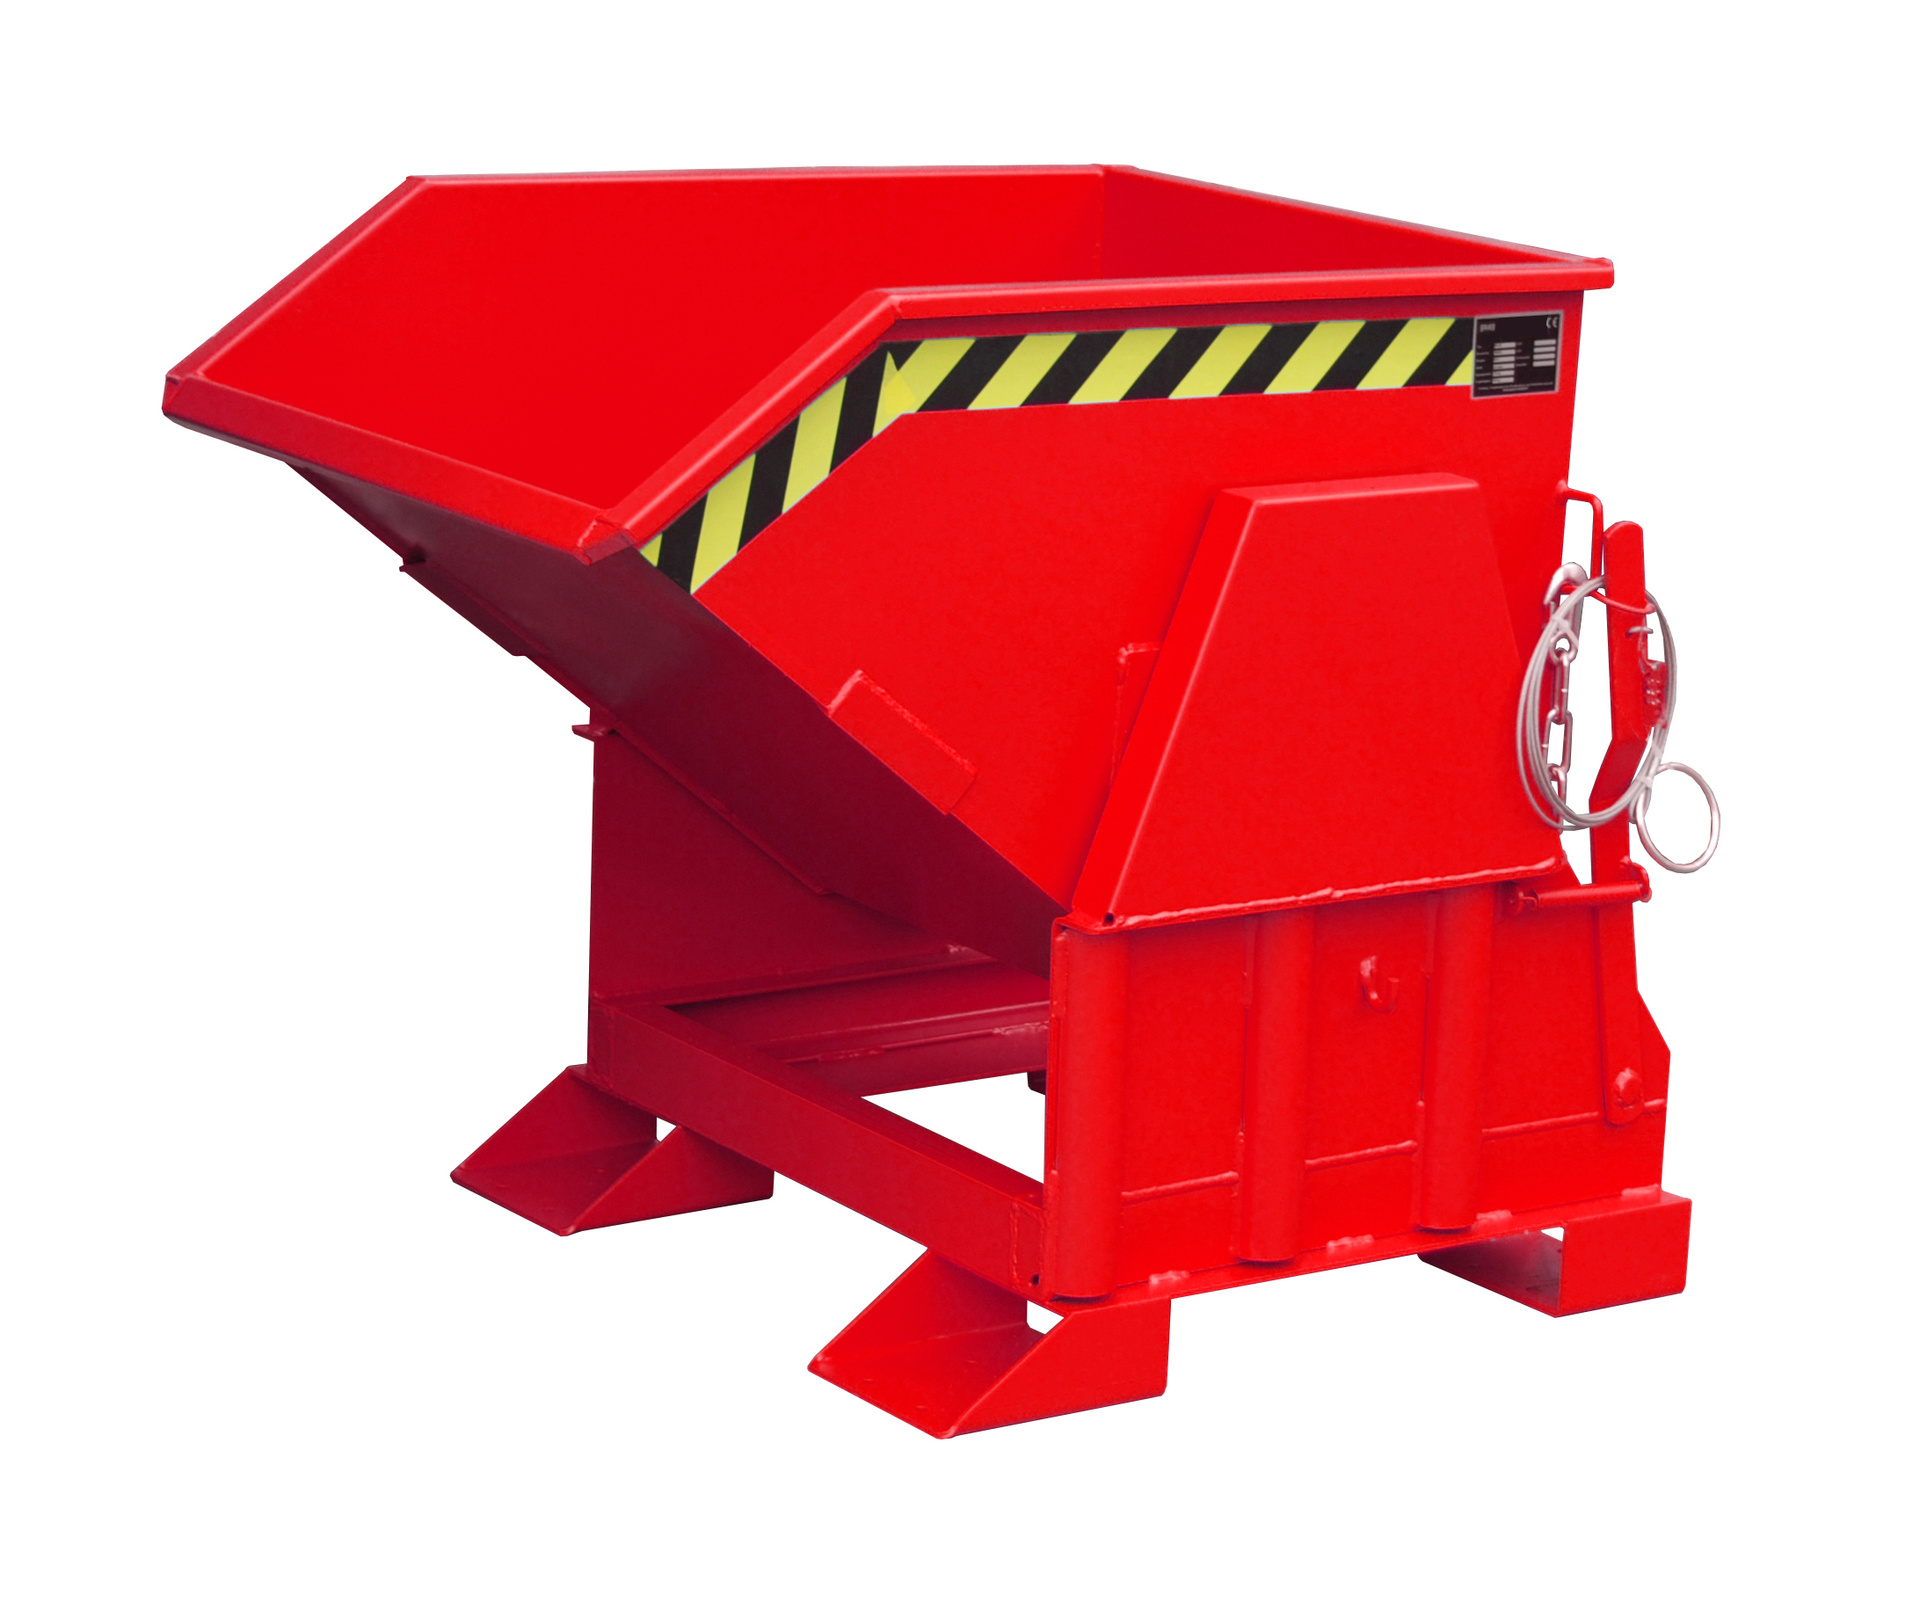 Bauer Südlohn® BK tilting container, tilting in each height by cable from the stacker seat